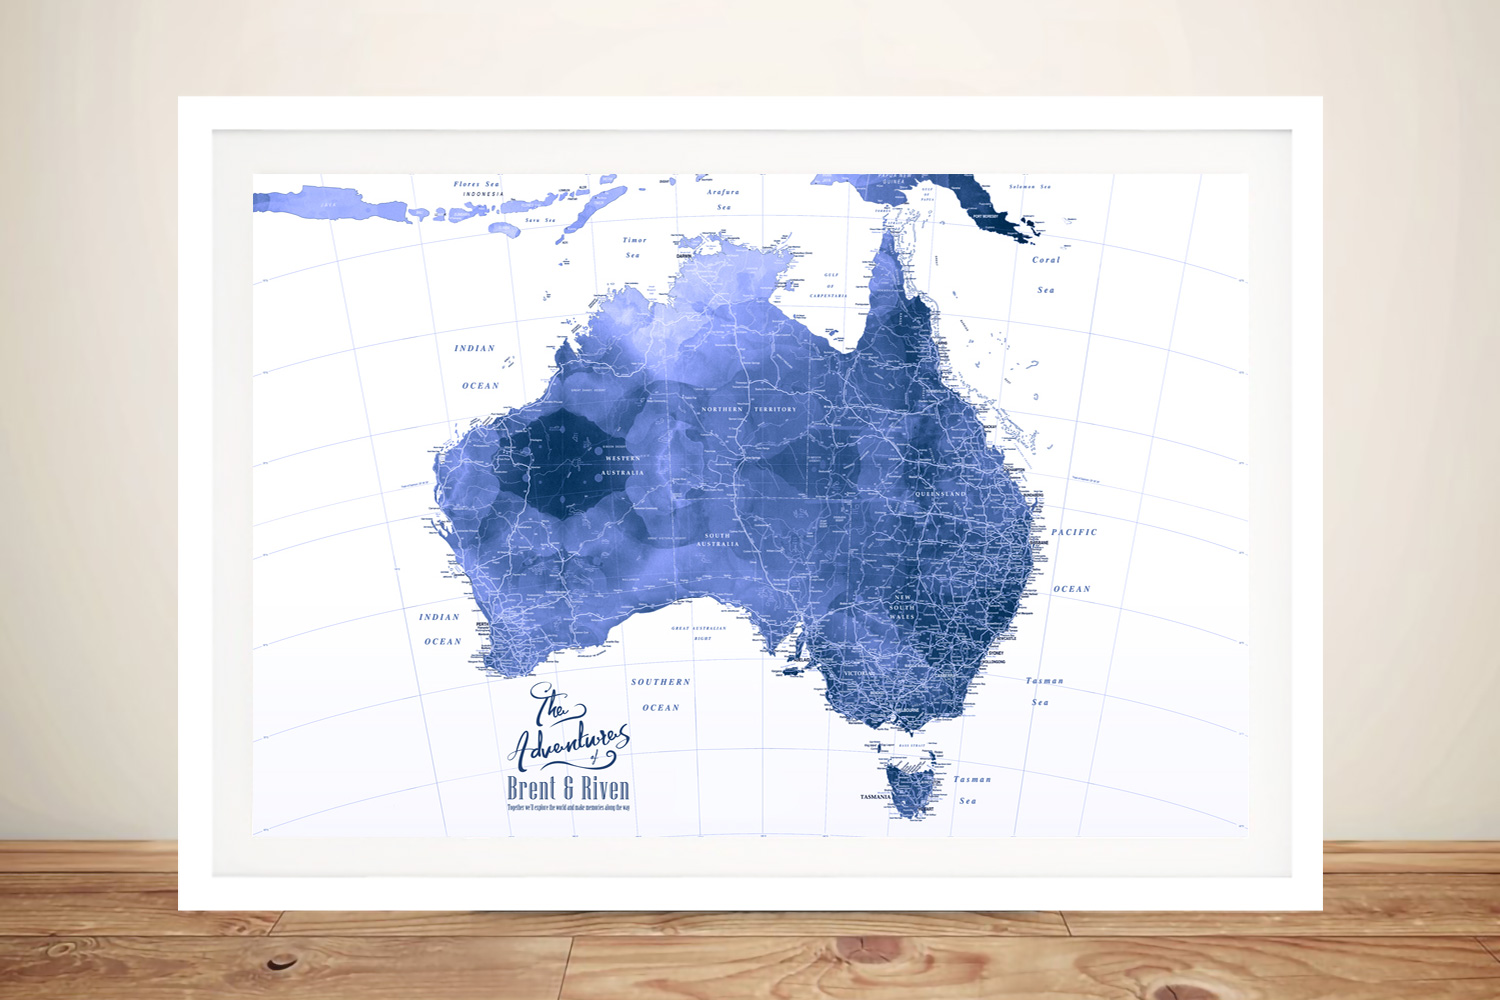 Australia Blue Watercolour Push Pin Pinboard Map Art | Australia Blue Watercolour Push Pin Map